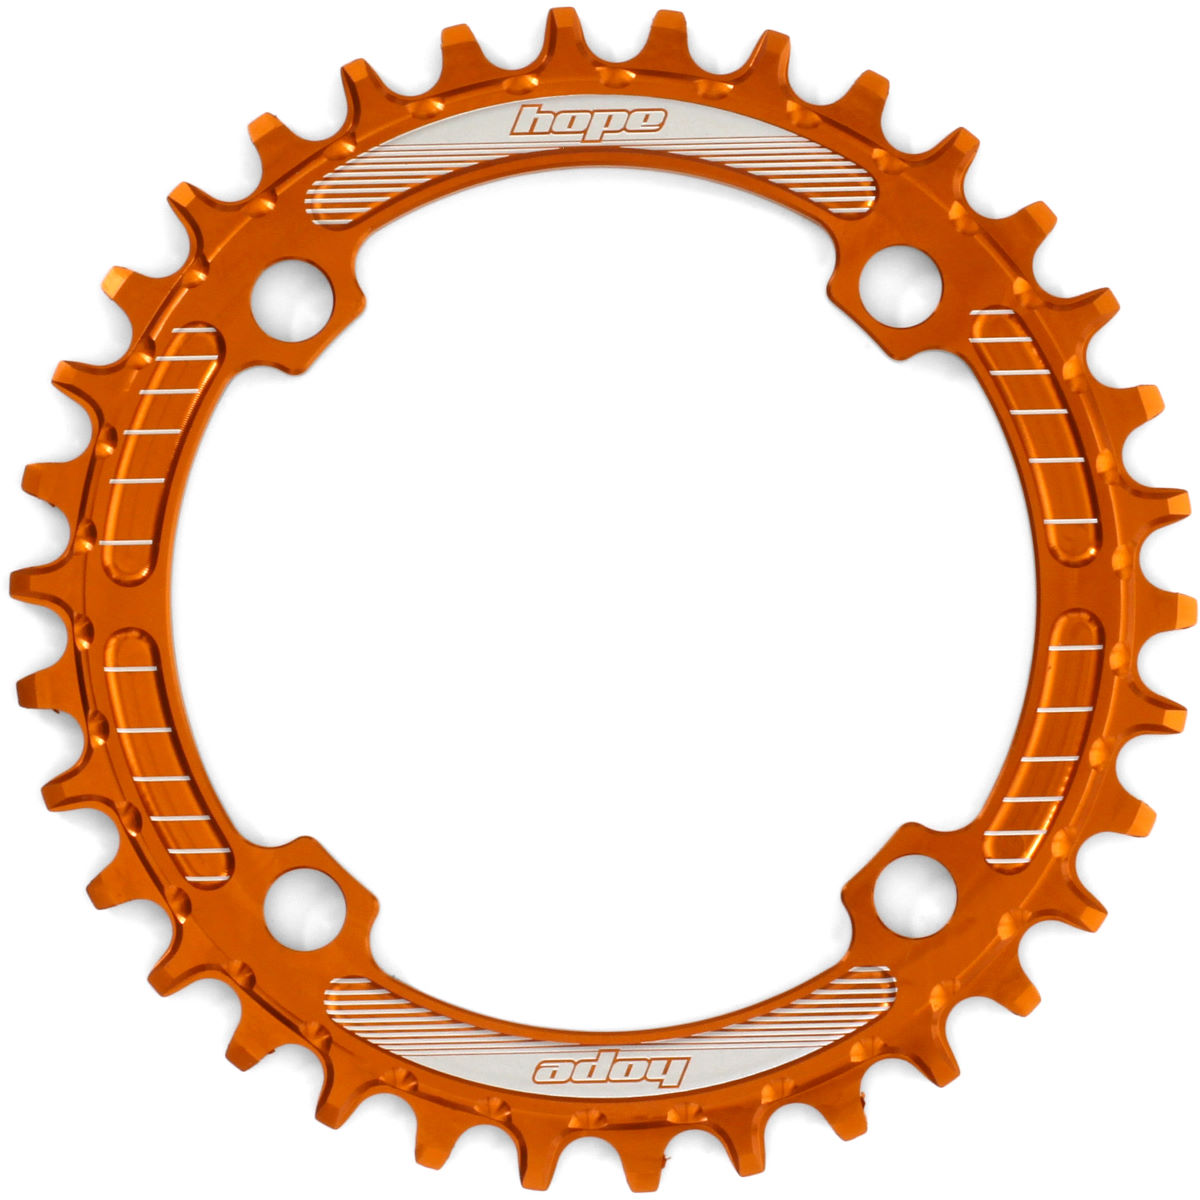 Bague de blocage Hope Retainer Narrow/Wide (30 dents) - Orange